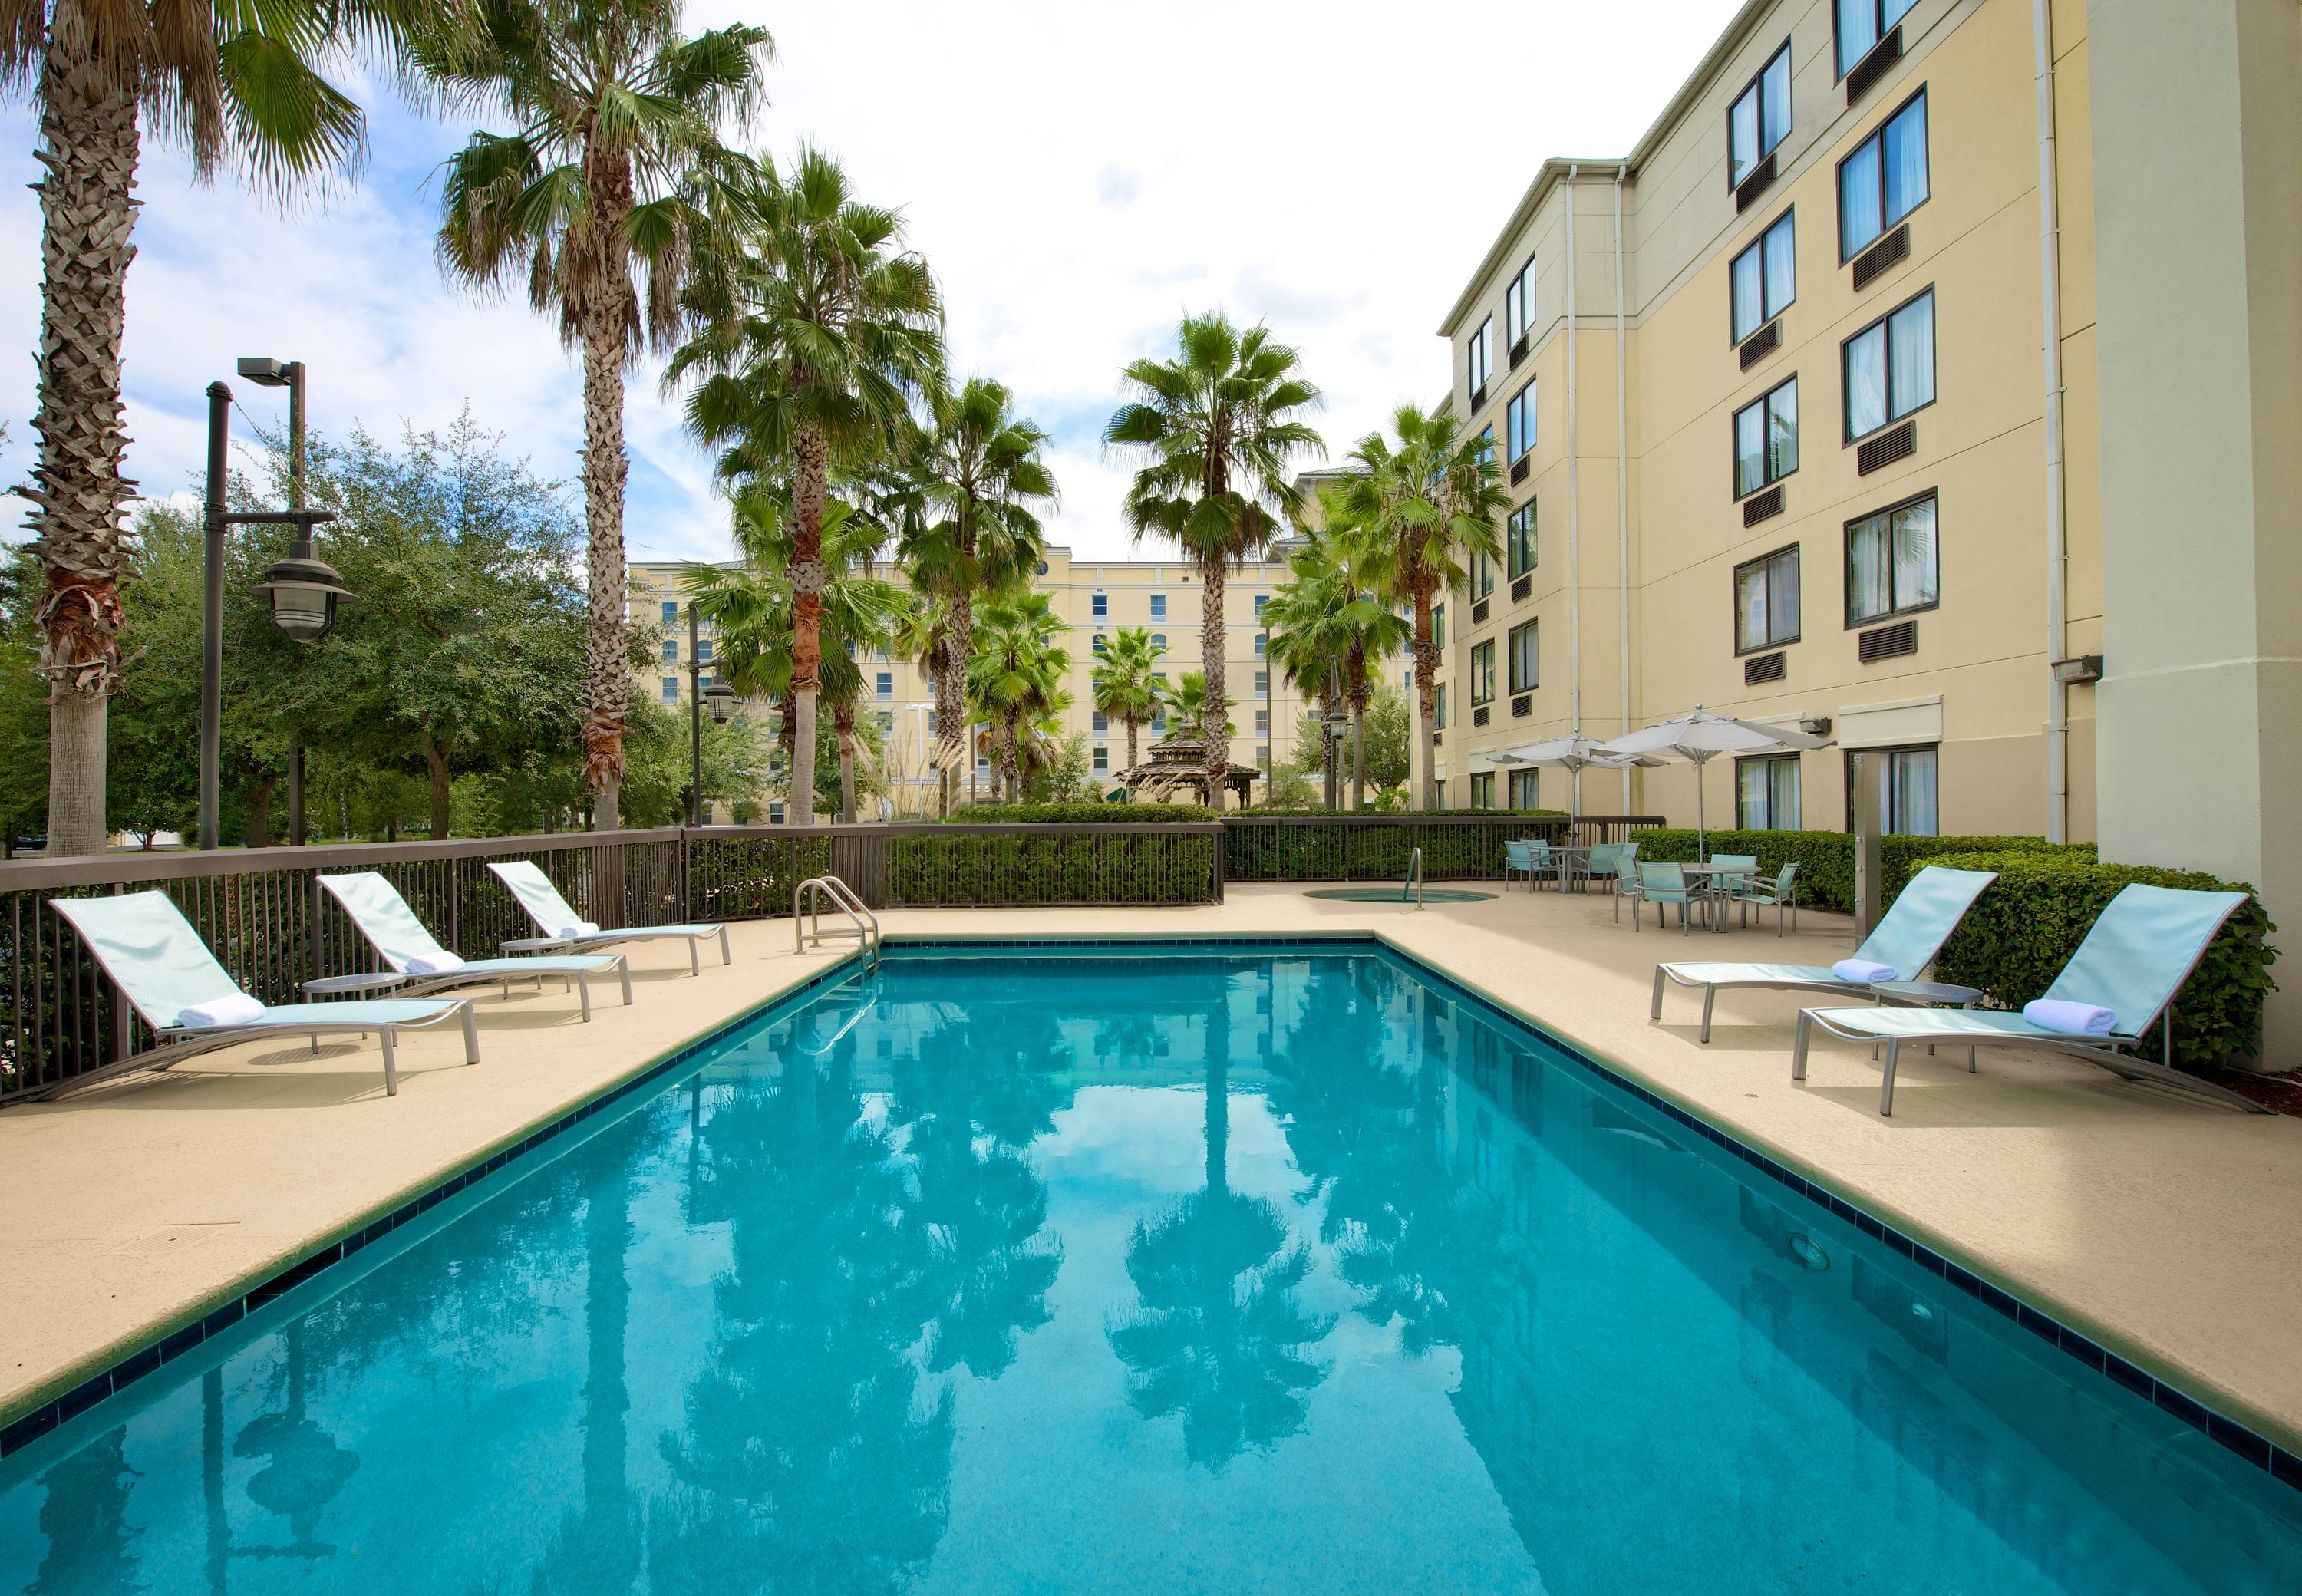 SpringHill Suites by Marriott Jacksonville image 8